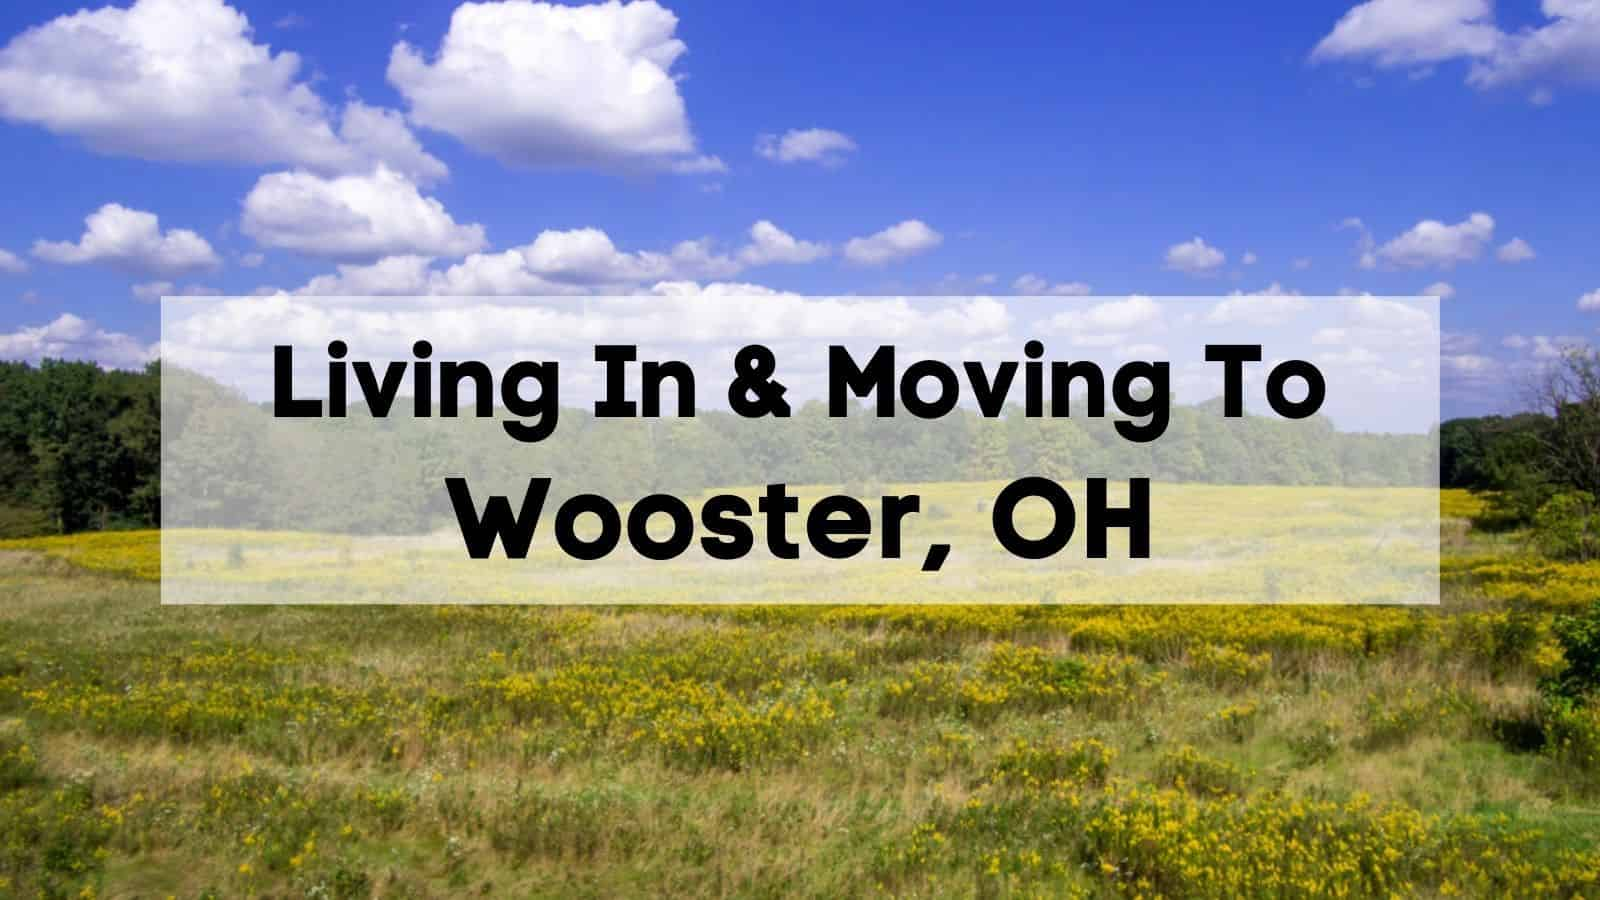 living in & moving to wooster, oh